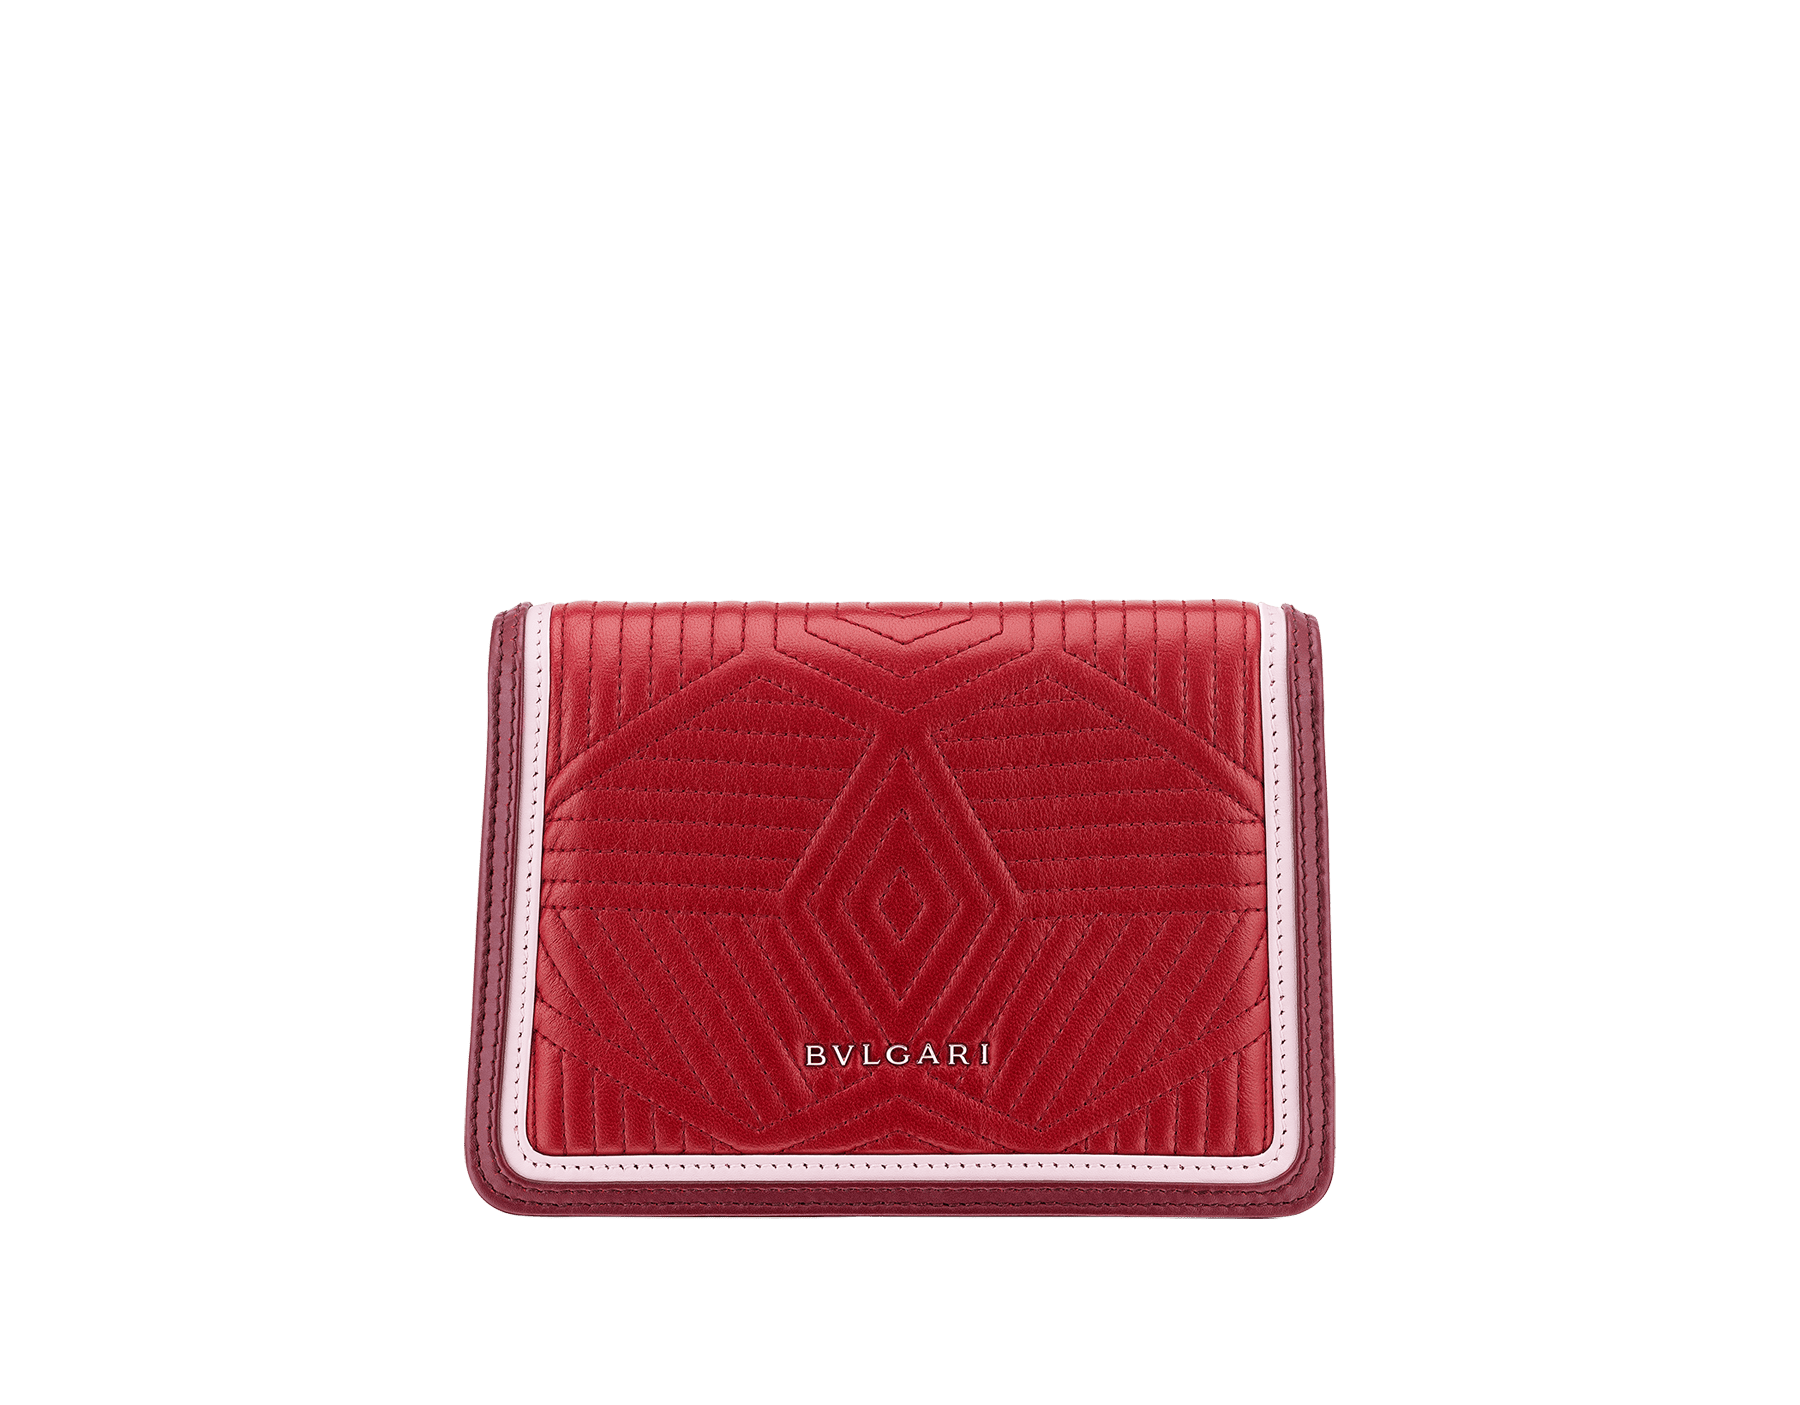 """""""Serpenti Diamond Blast"""" crossbody micro bag in ruby red quilted nappa leather body and Roman garnet calf leather frames. Iconic snakehead closure in light gold plated brass enriched with black and rosa di francia enamel and black onyx eyes. 288845 image 3"""